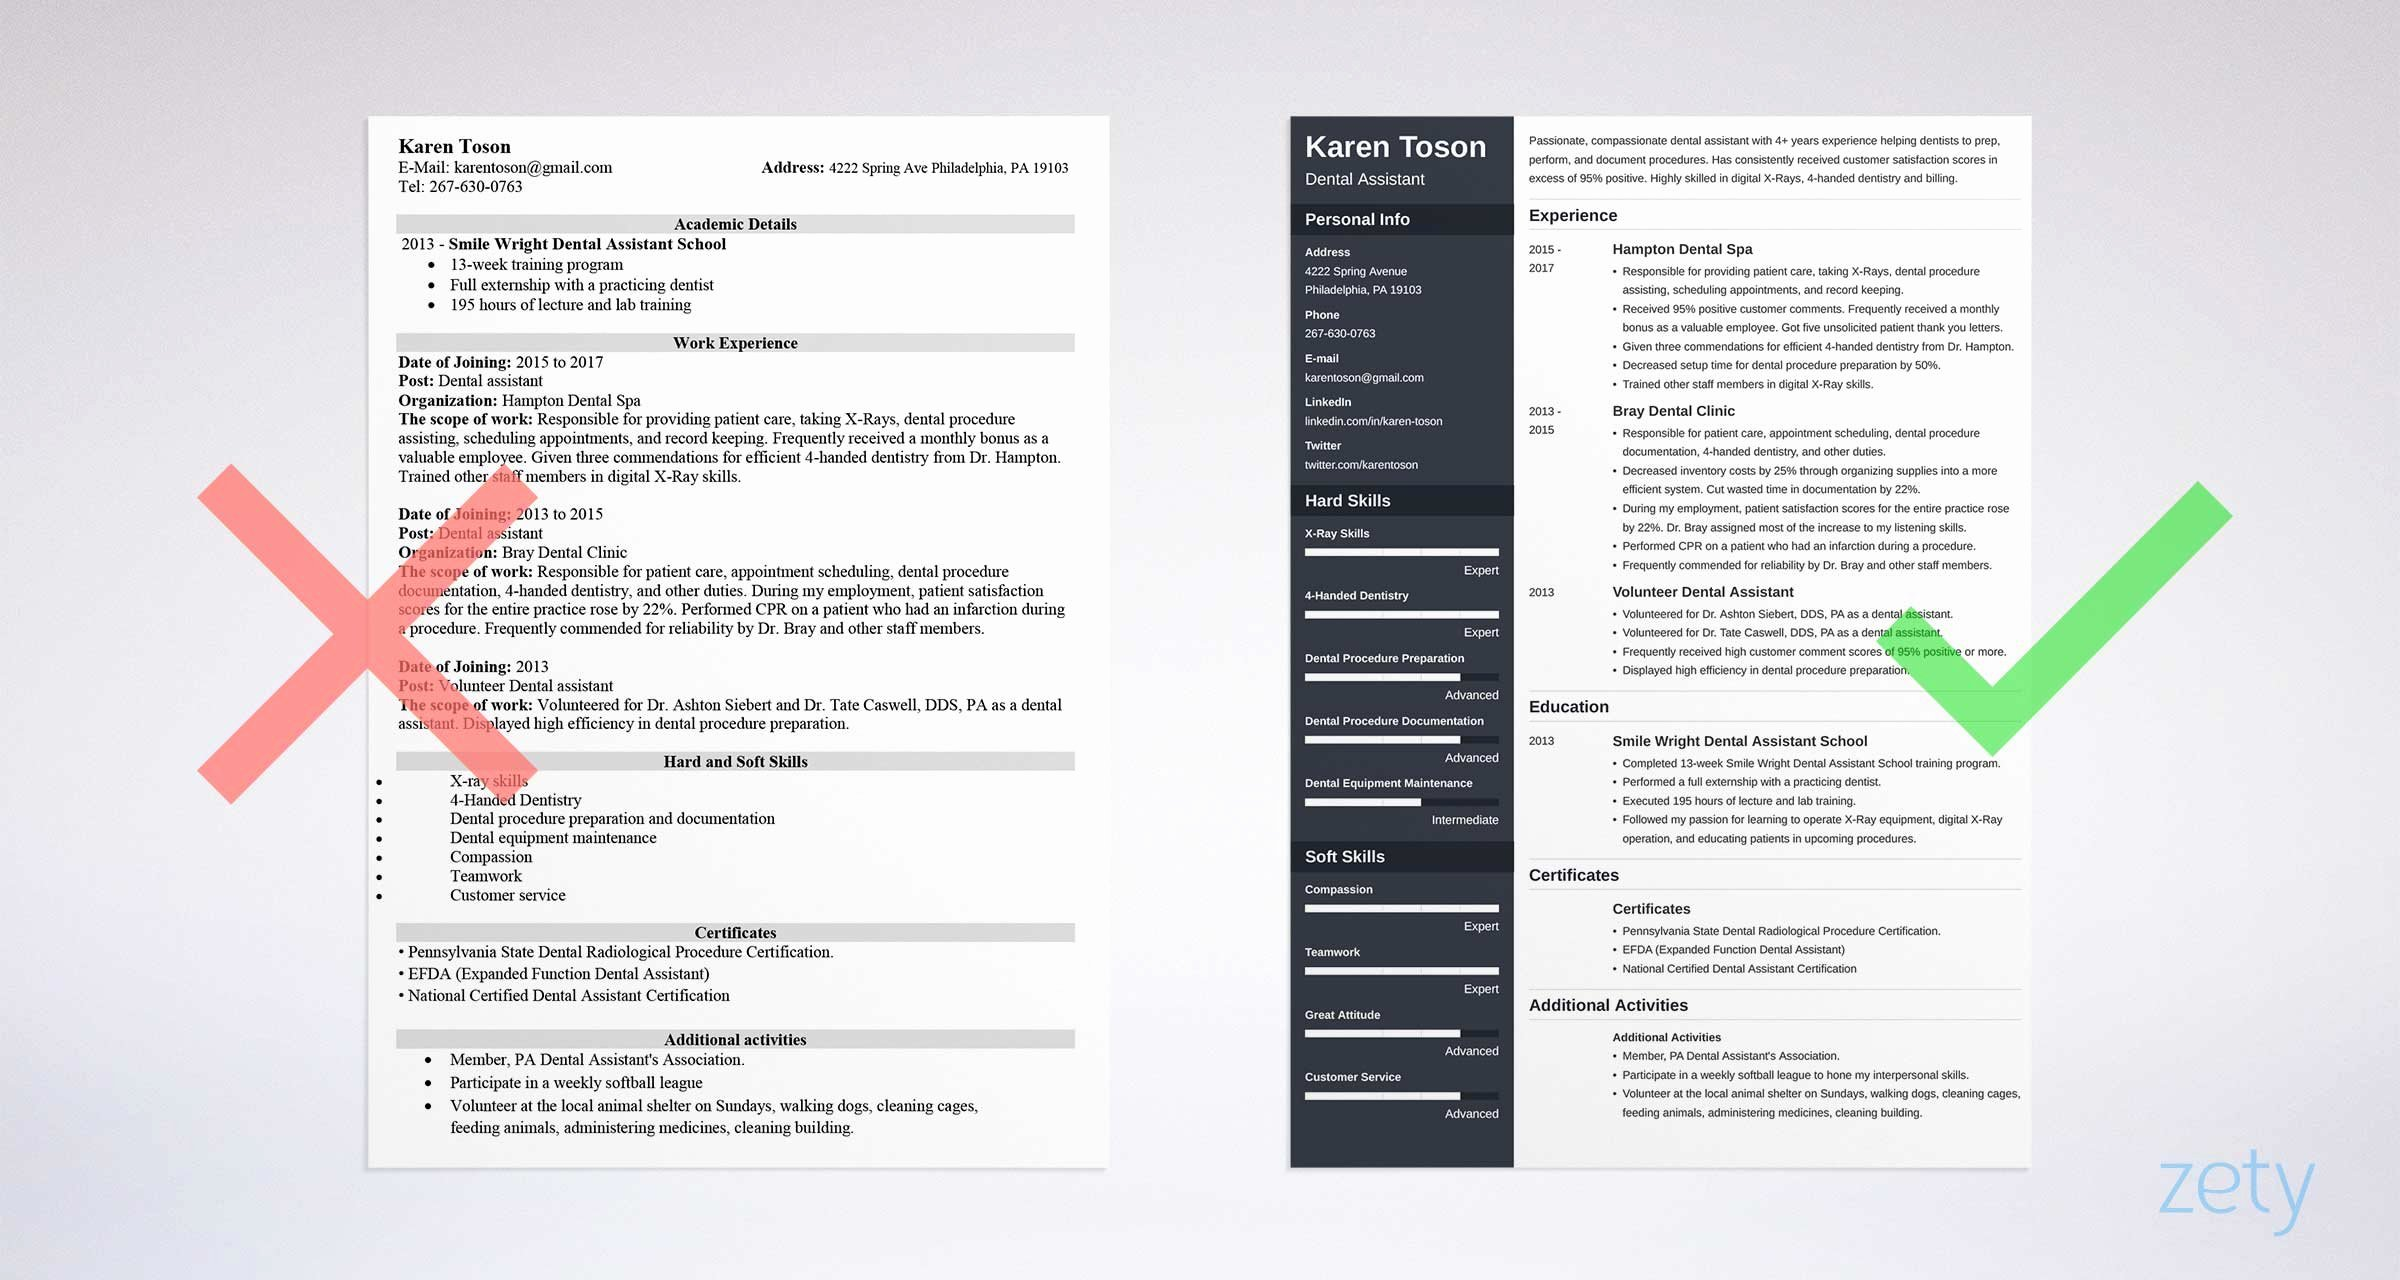 One Page Resume Template Word Luxury E Page Resume Templates 15 Examples to Download and Use now